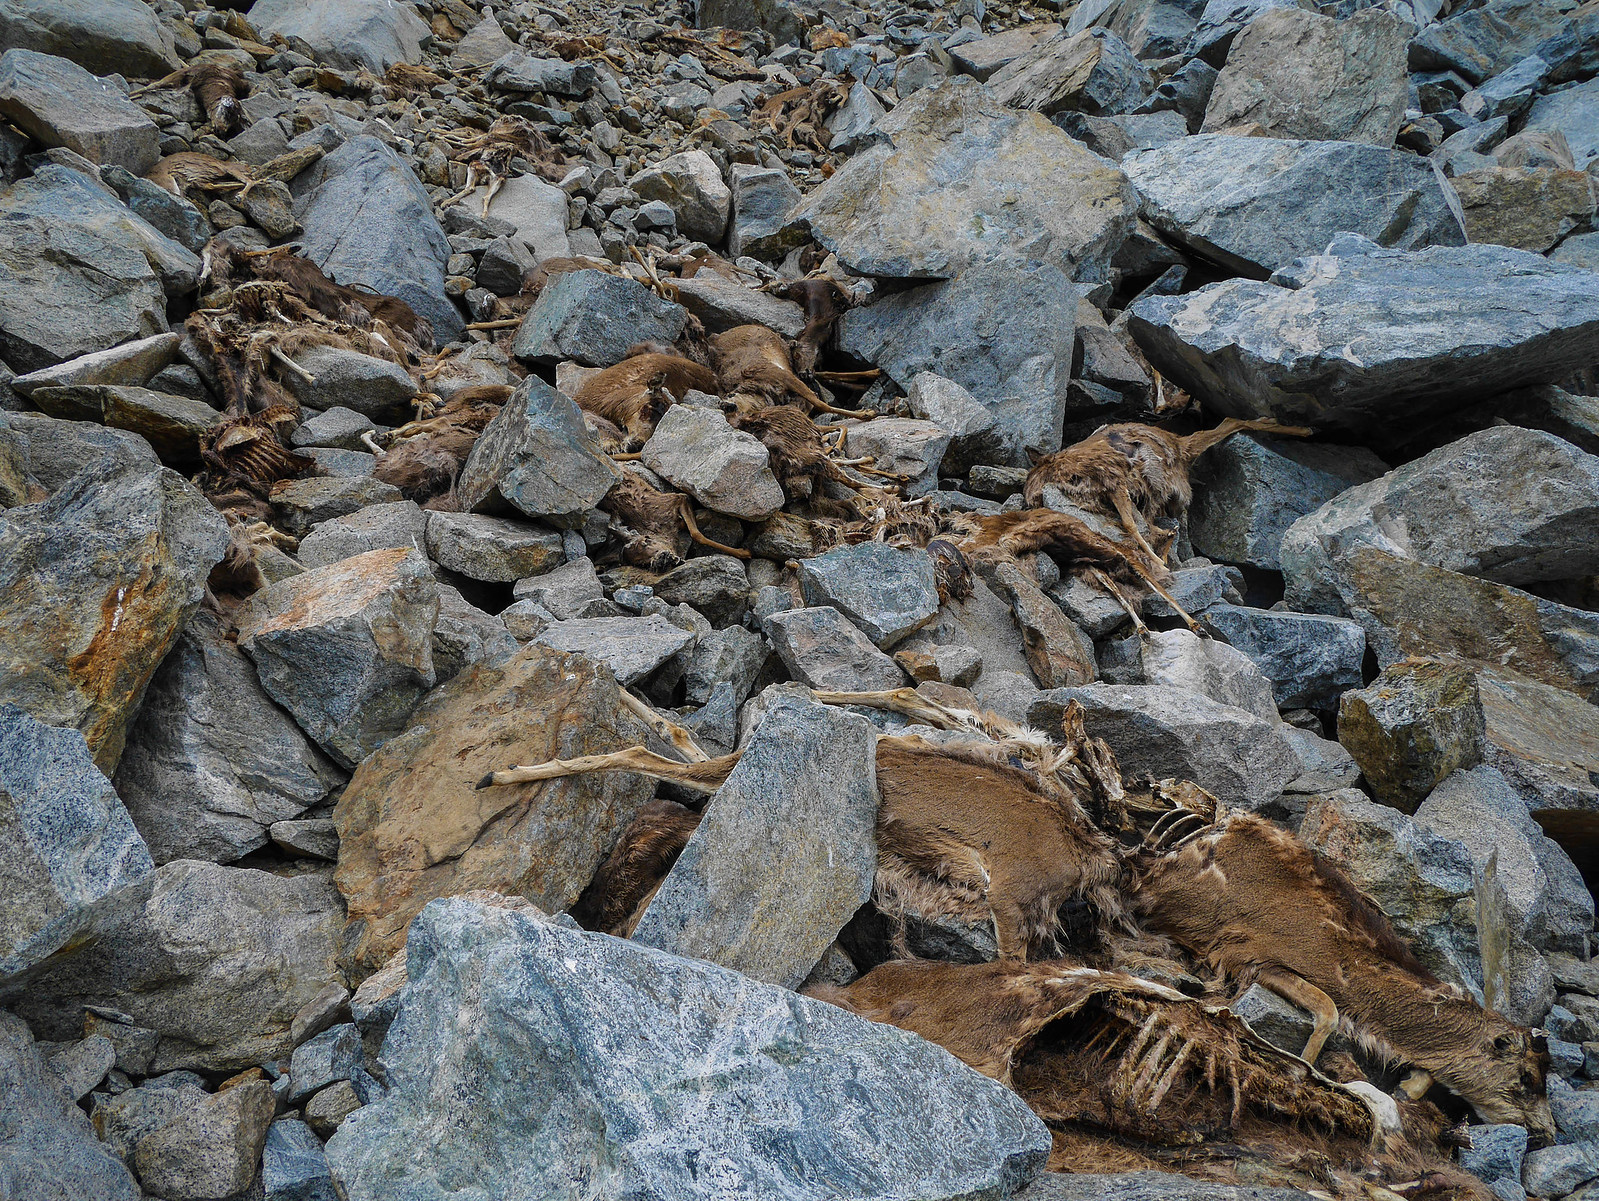 At least 30 dead deer that got caught in a rockslide or avalanche last fall